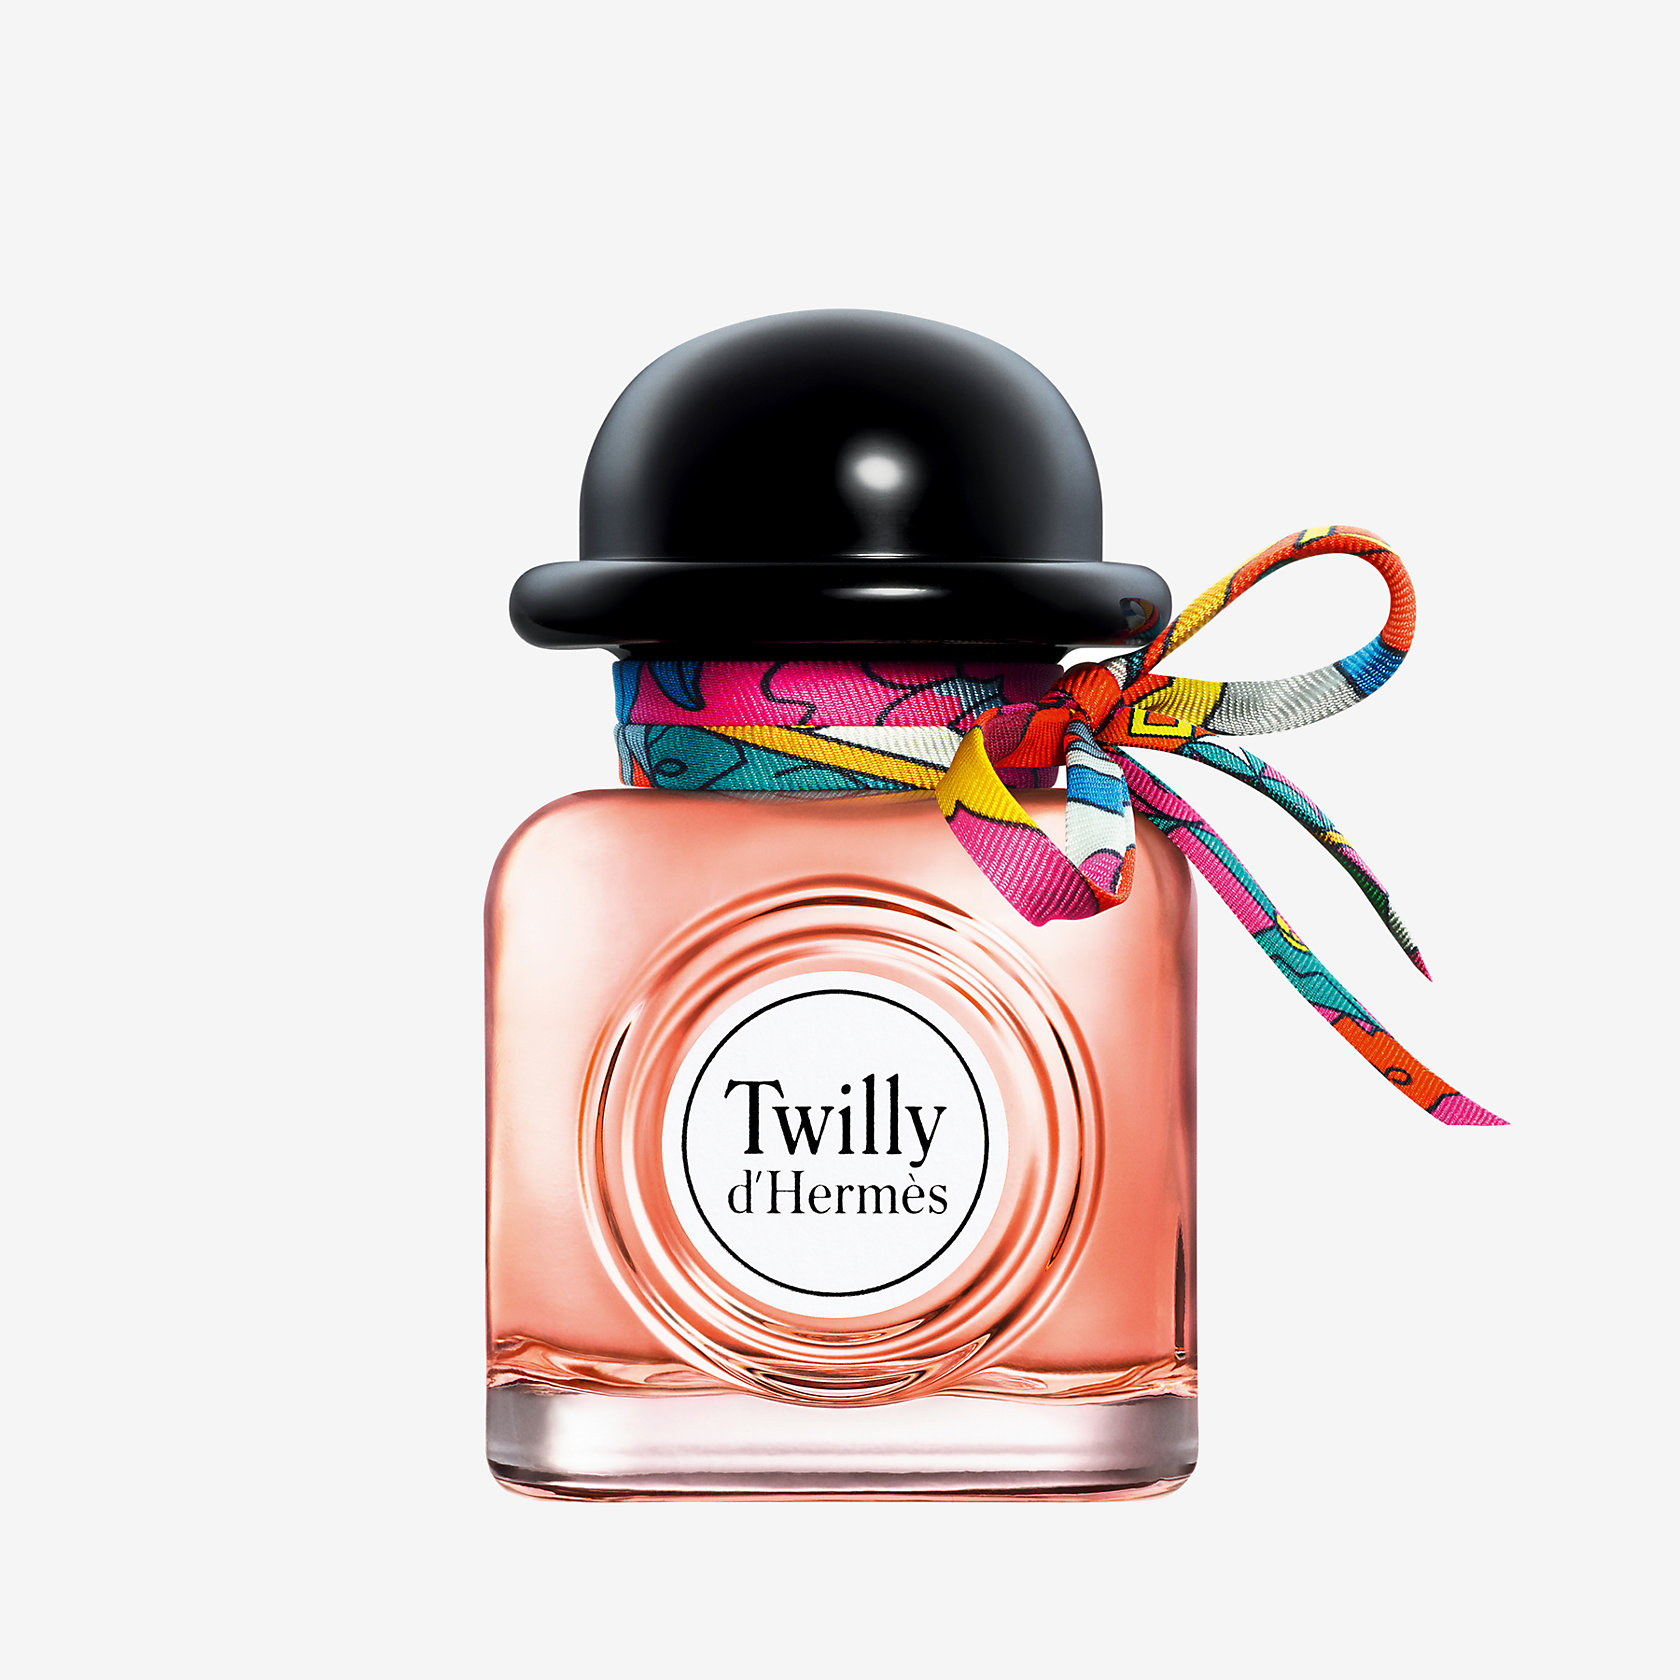 twilly d hermès